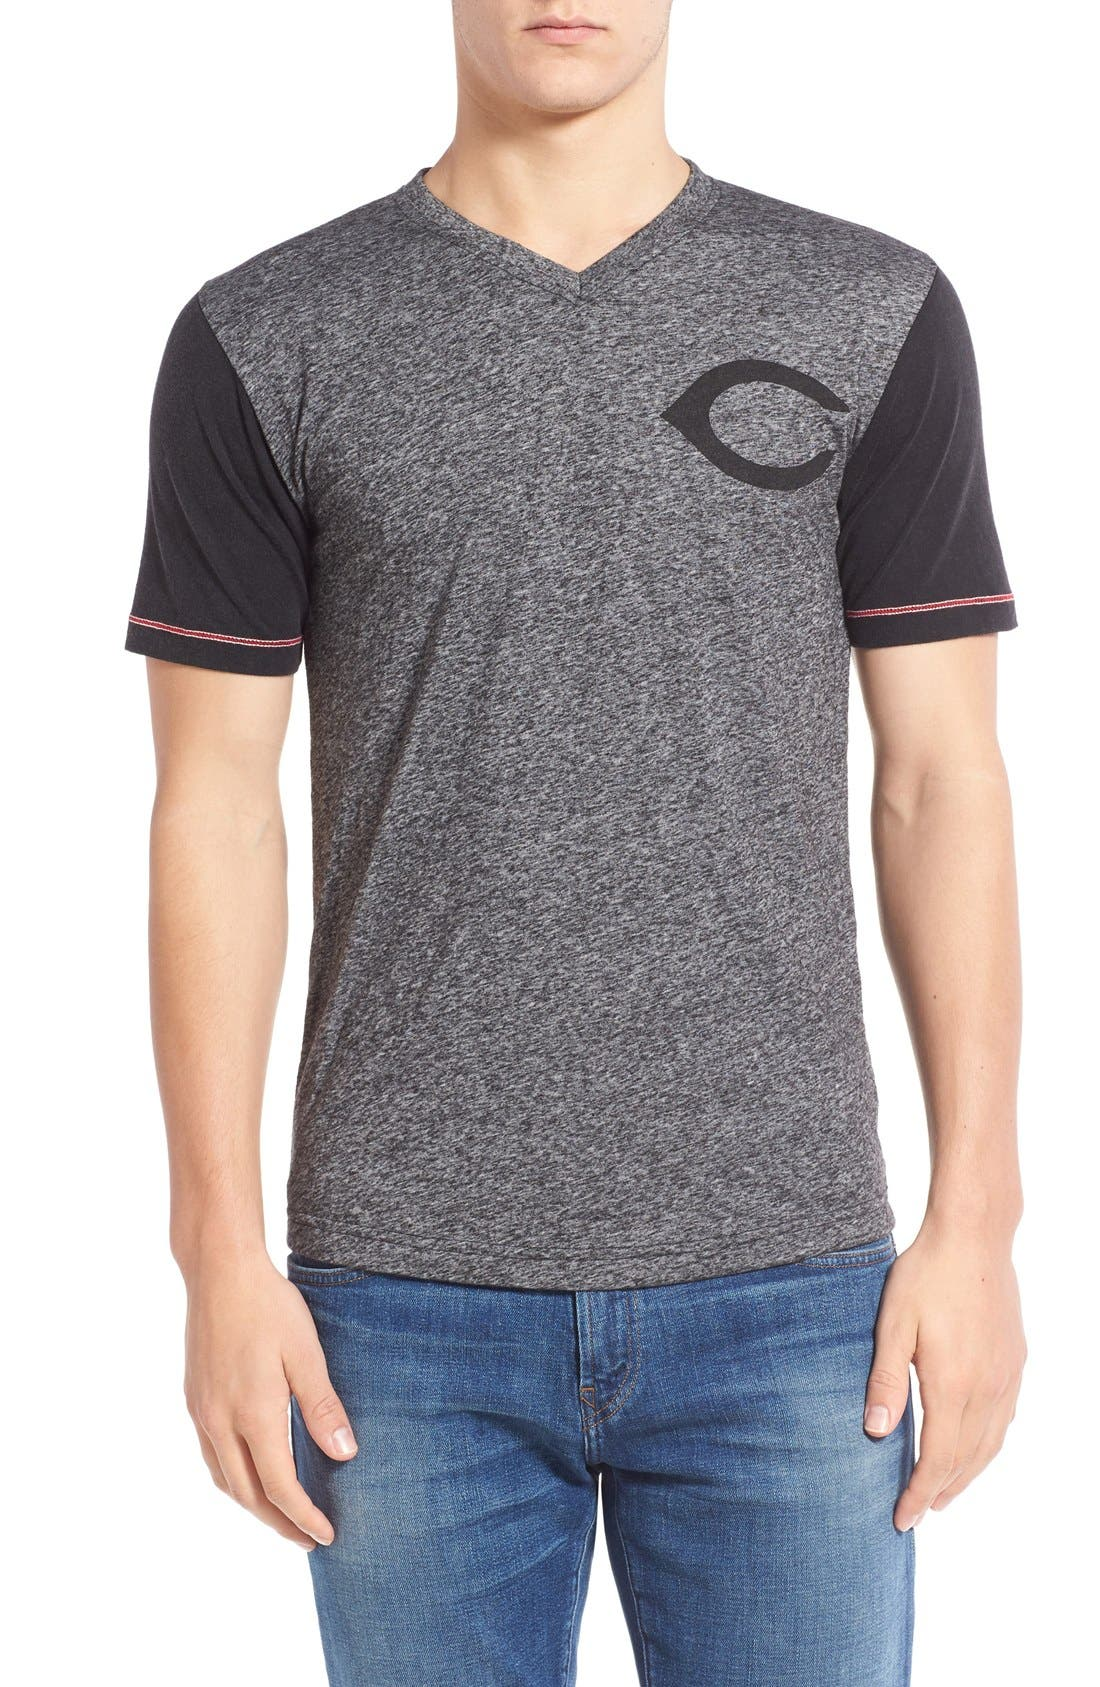 'Cincinnati Reds - Onyx' Trim Fit V-Neck T-Shirt,                         Main,                         color, Charcoal-Black